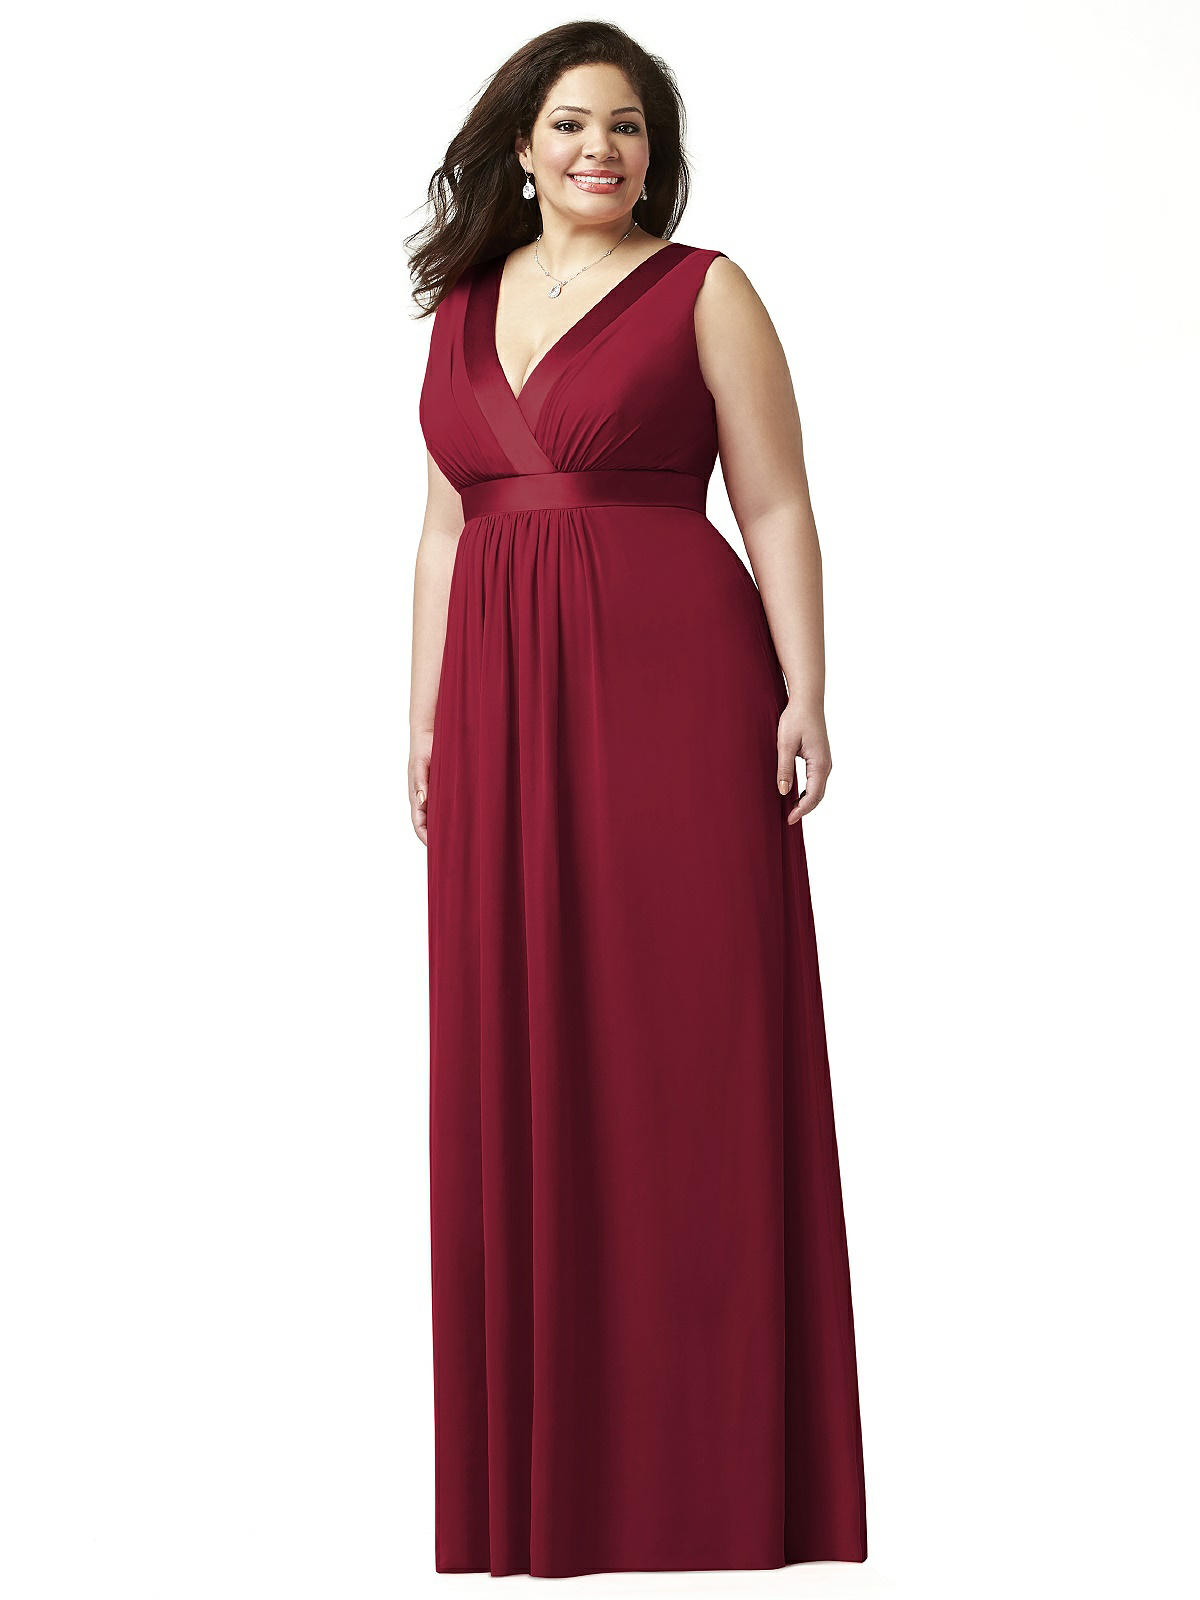 plus size bridesmaid dresses burgundy